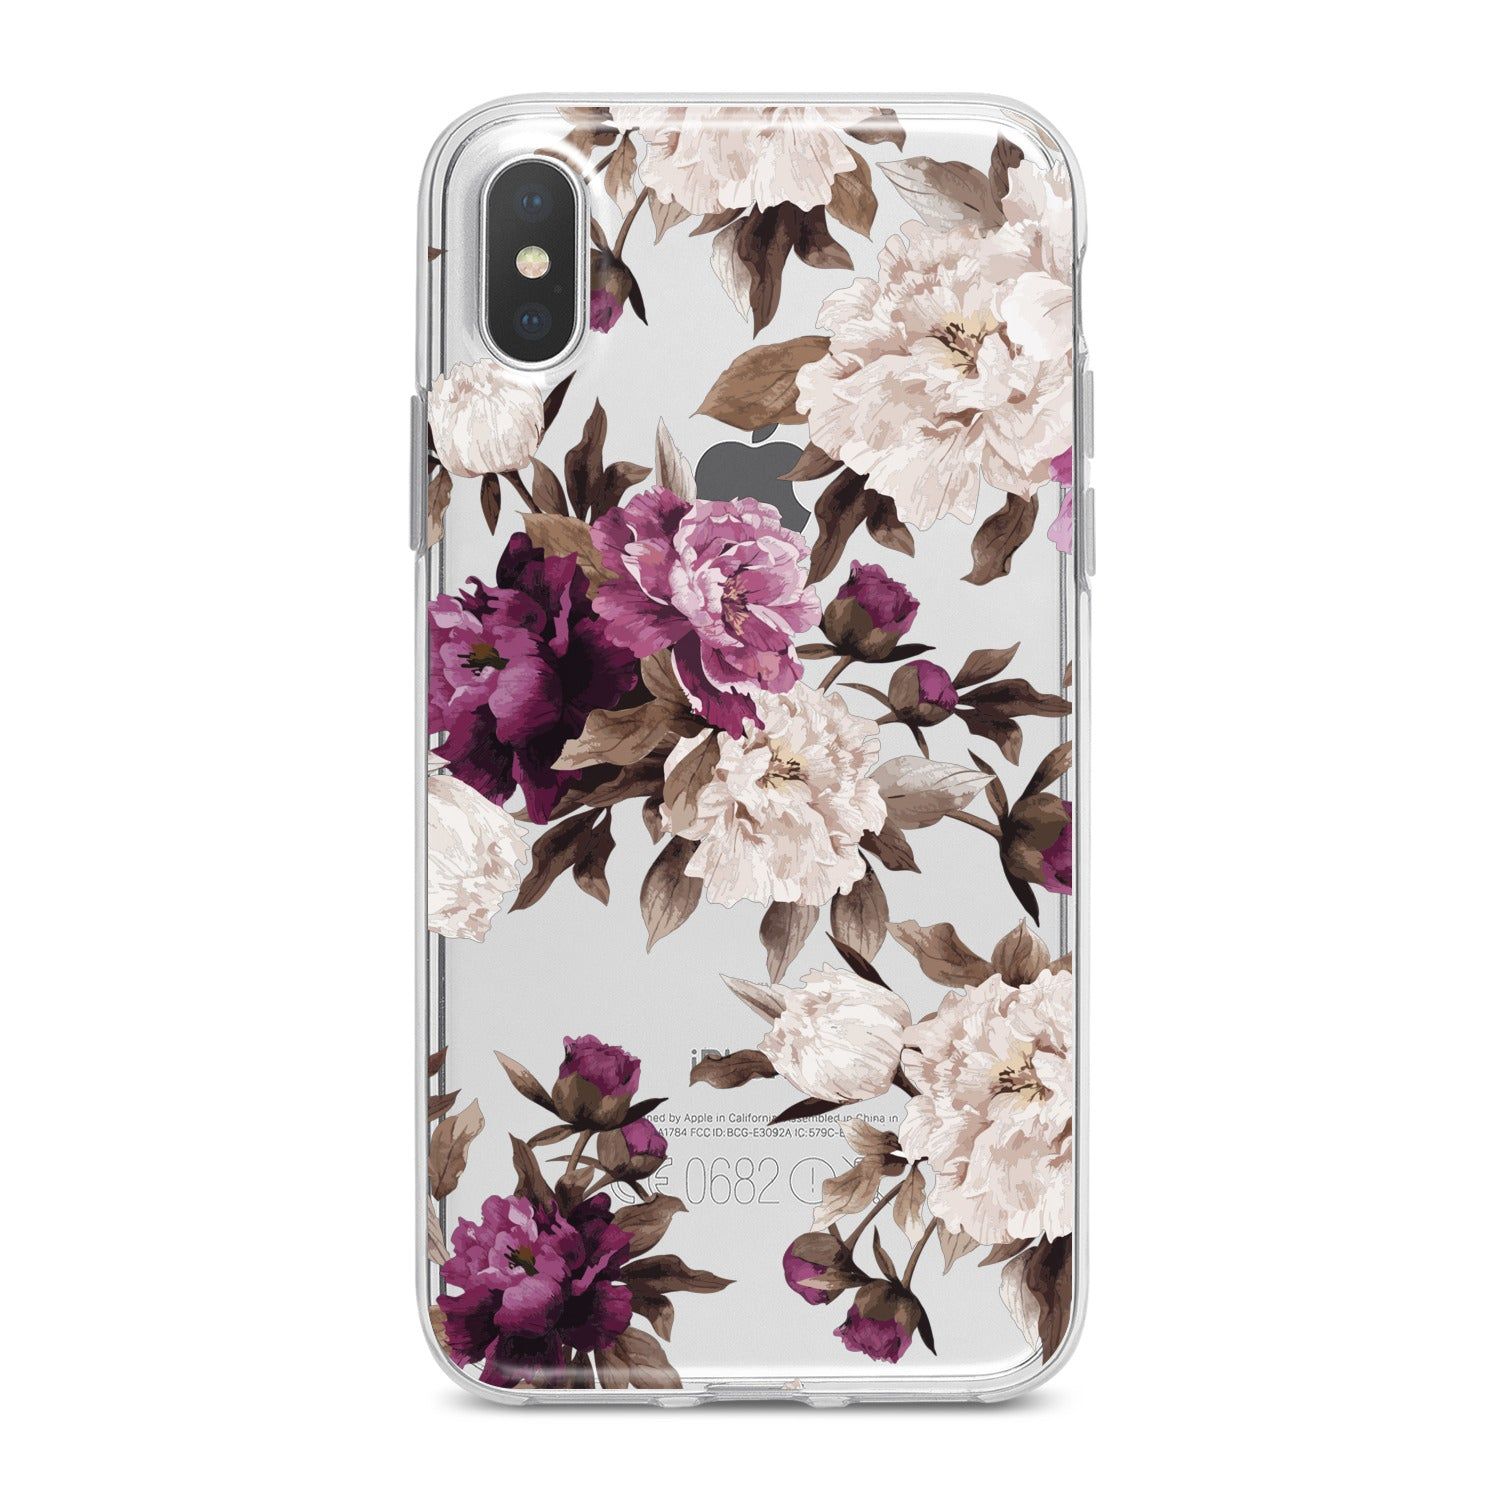 Lex Altern Beautiful Garden Blossom Phone Case for your iPhone & Android phone.